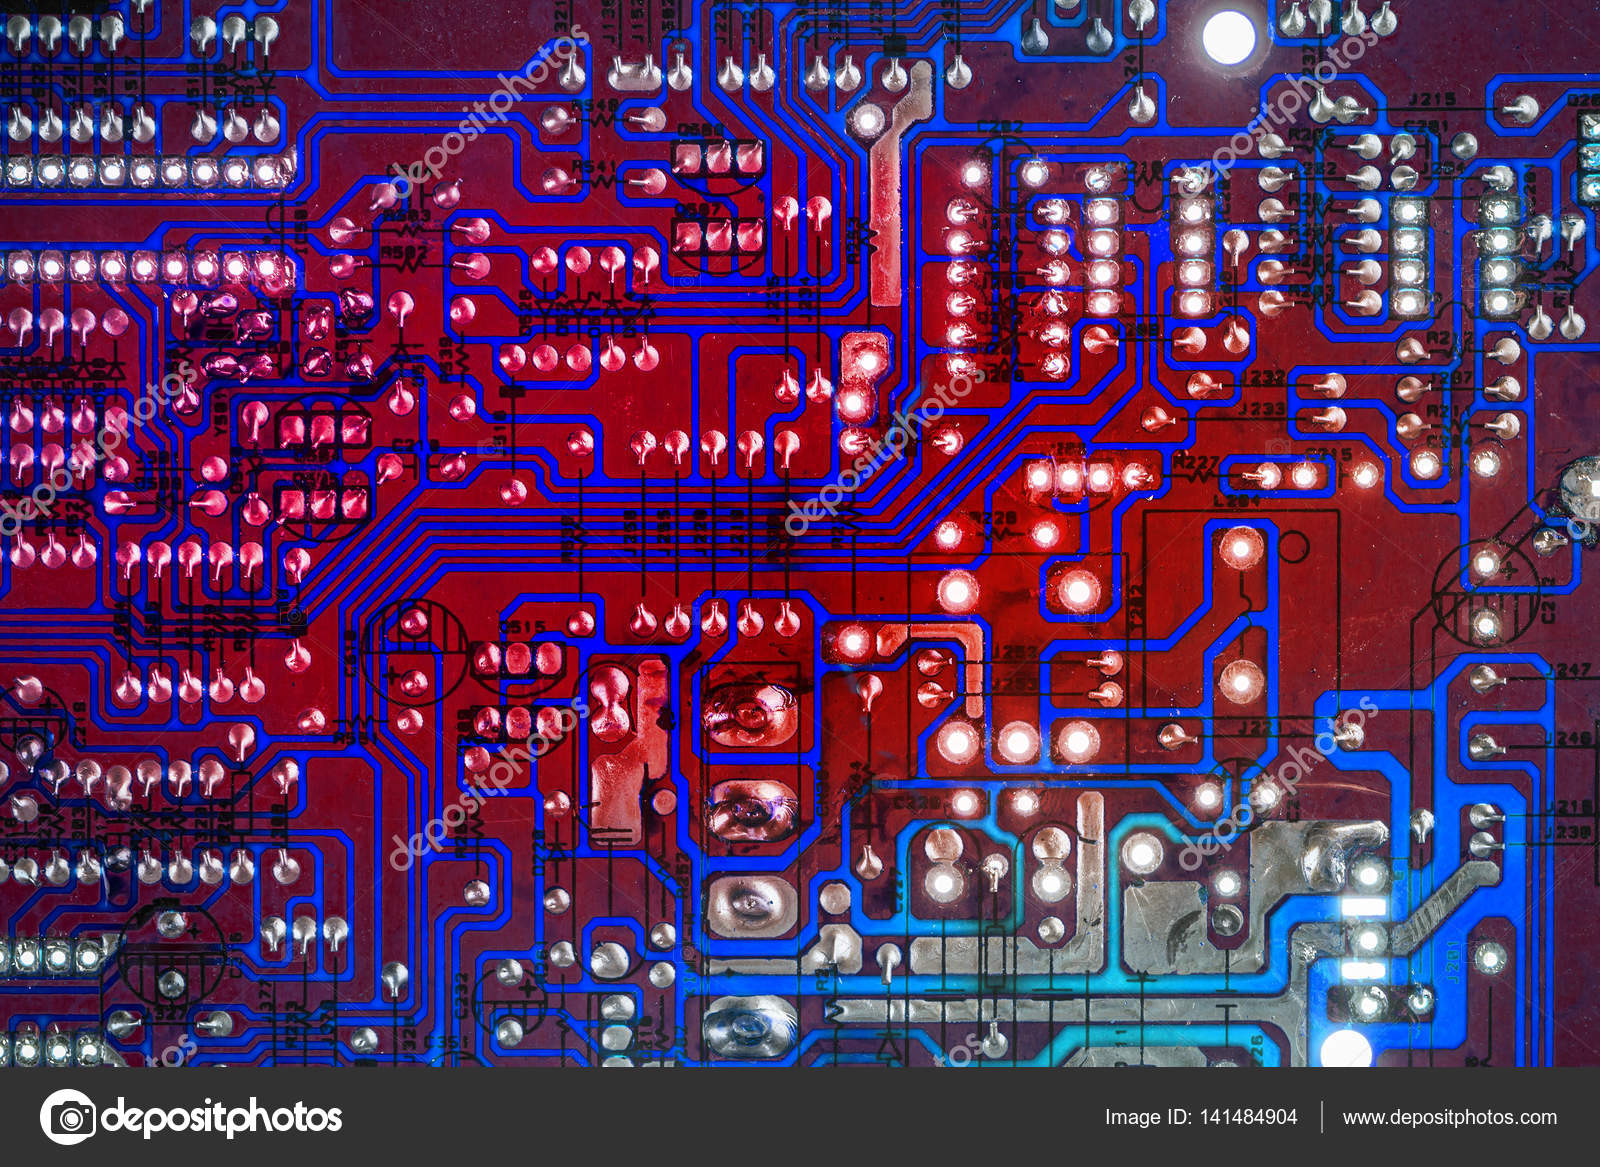 Electronic Printed Circuit Board Stock Photo Grafvision 141484904 With Many Electrical Components Detail Of An By